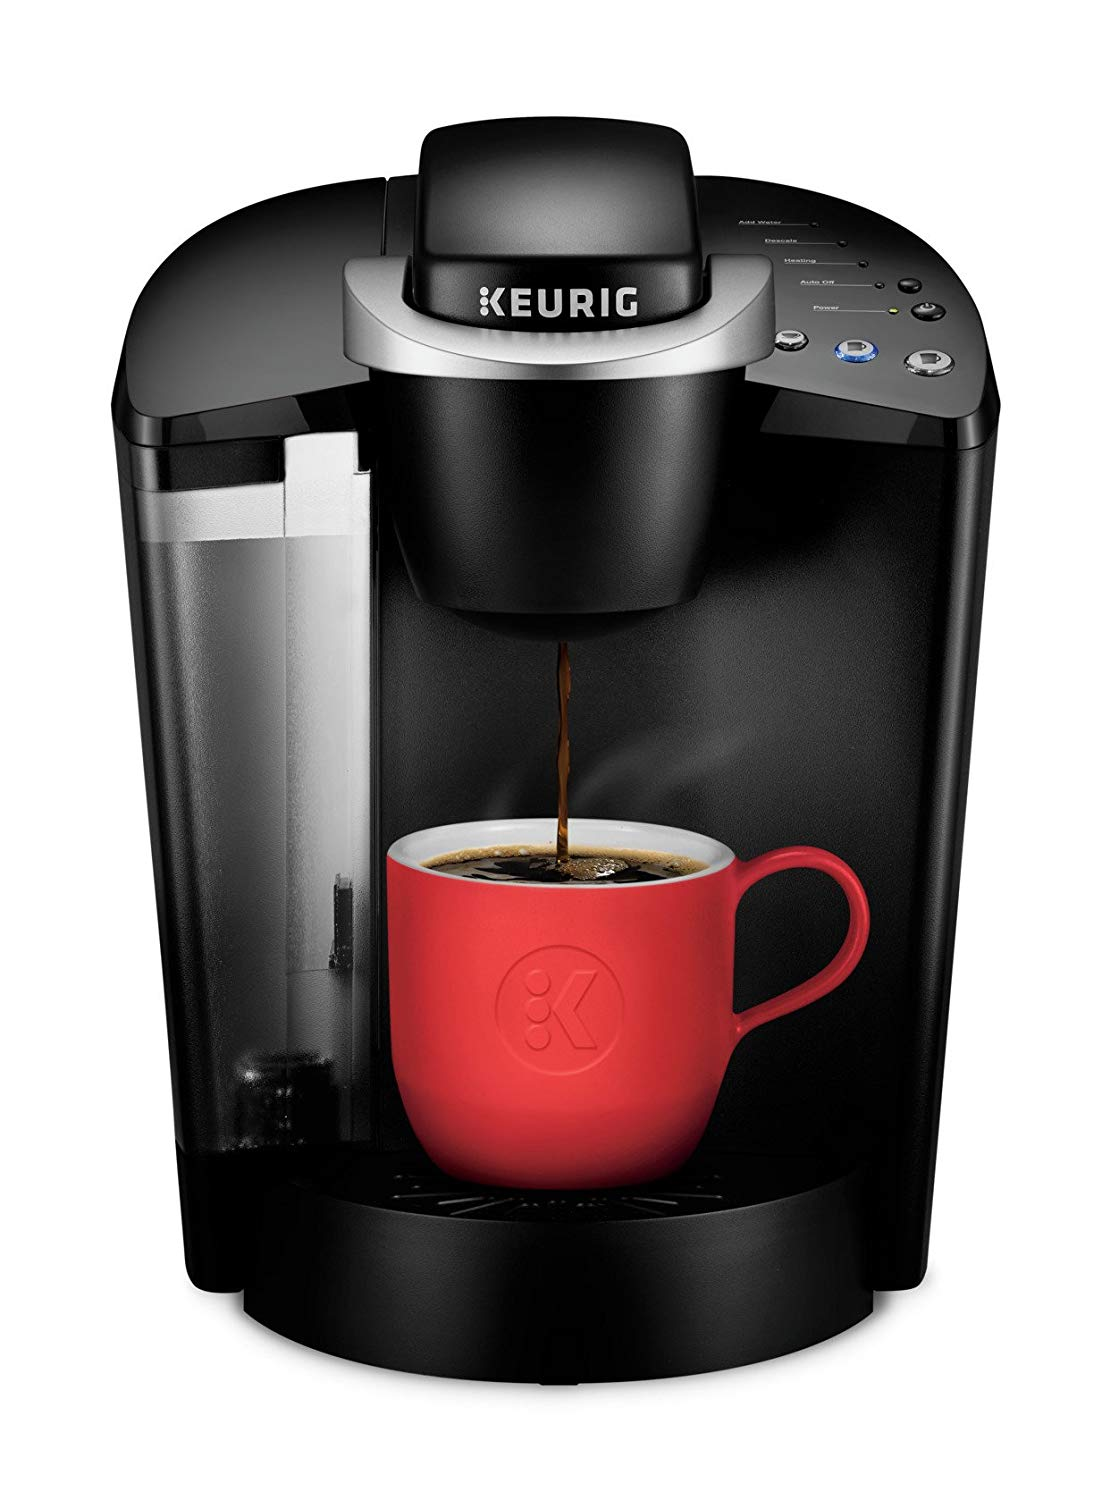 Keurig-K-Classic-Coffee-Maker-Single-Serve-K-Cup-Pod-Coffee-Brewer-6-To-10-Oz-Brew-Sizes-Black